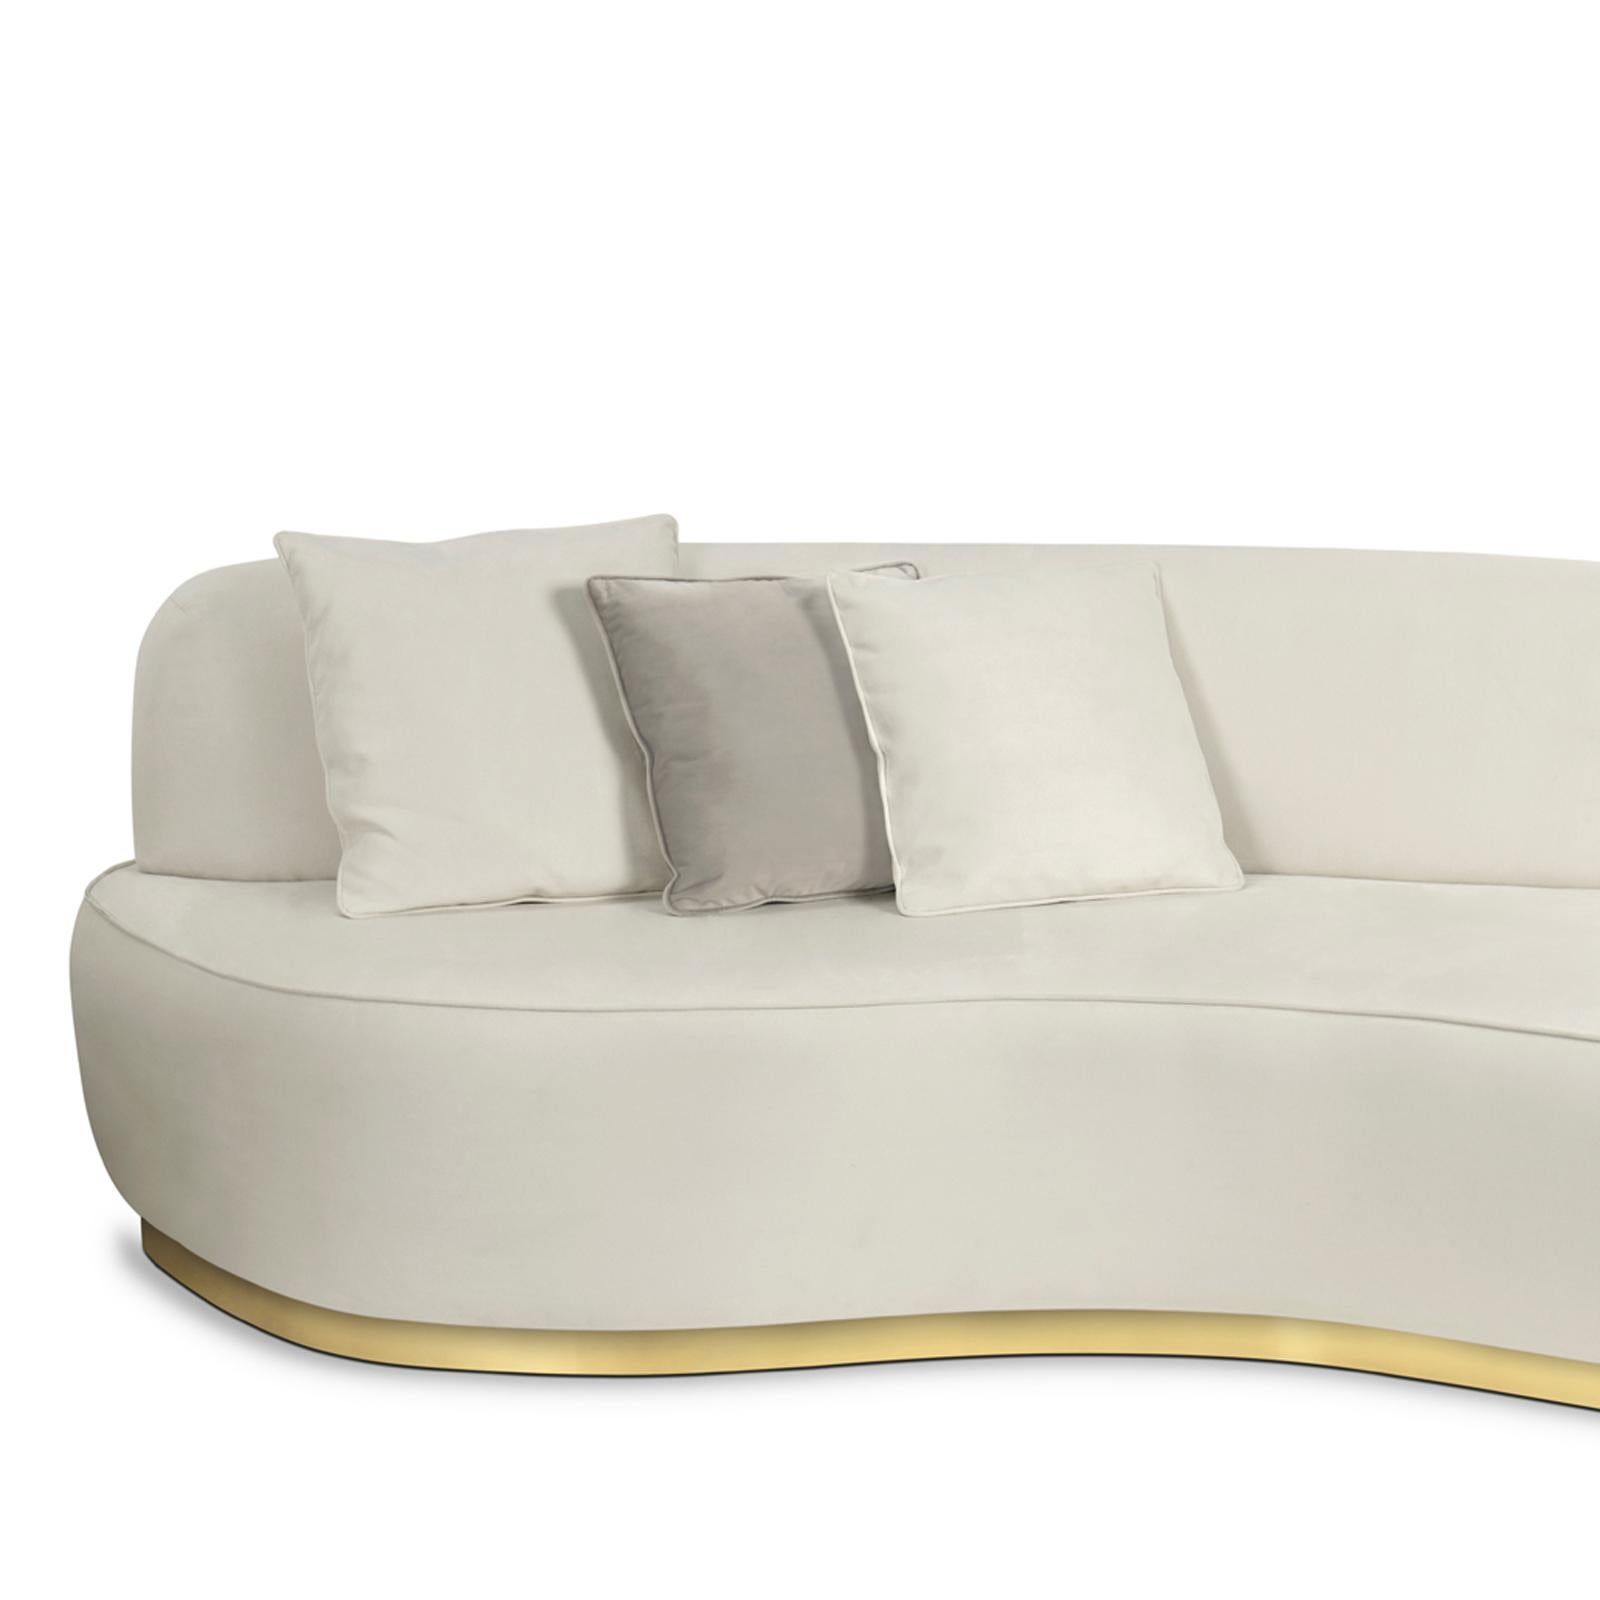 Charmant Curved White Sofa